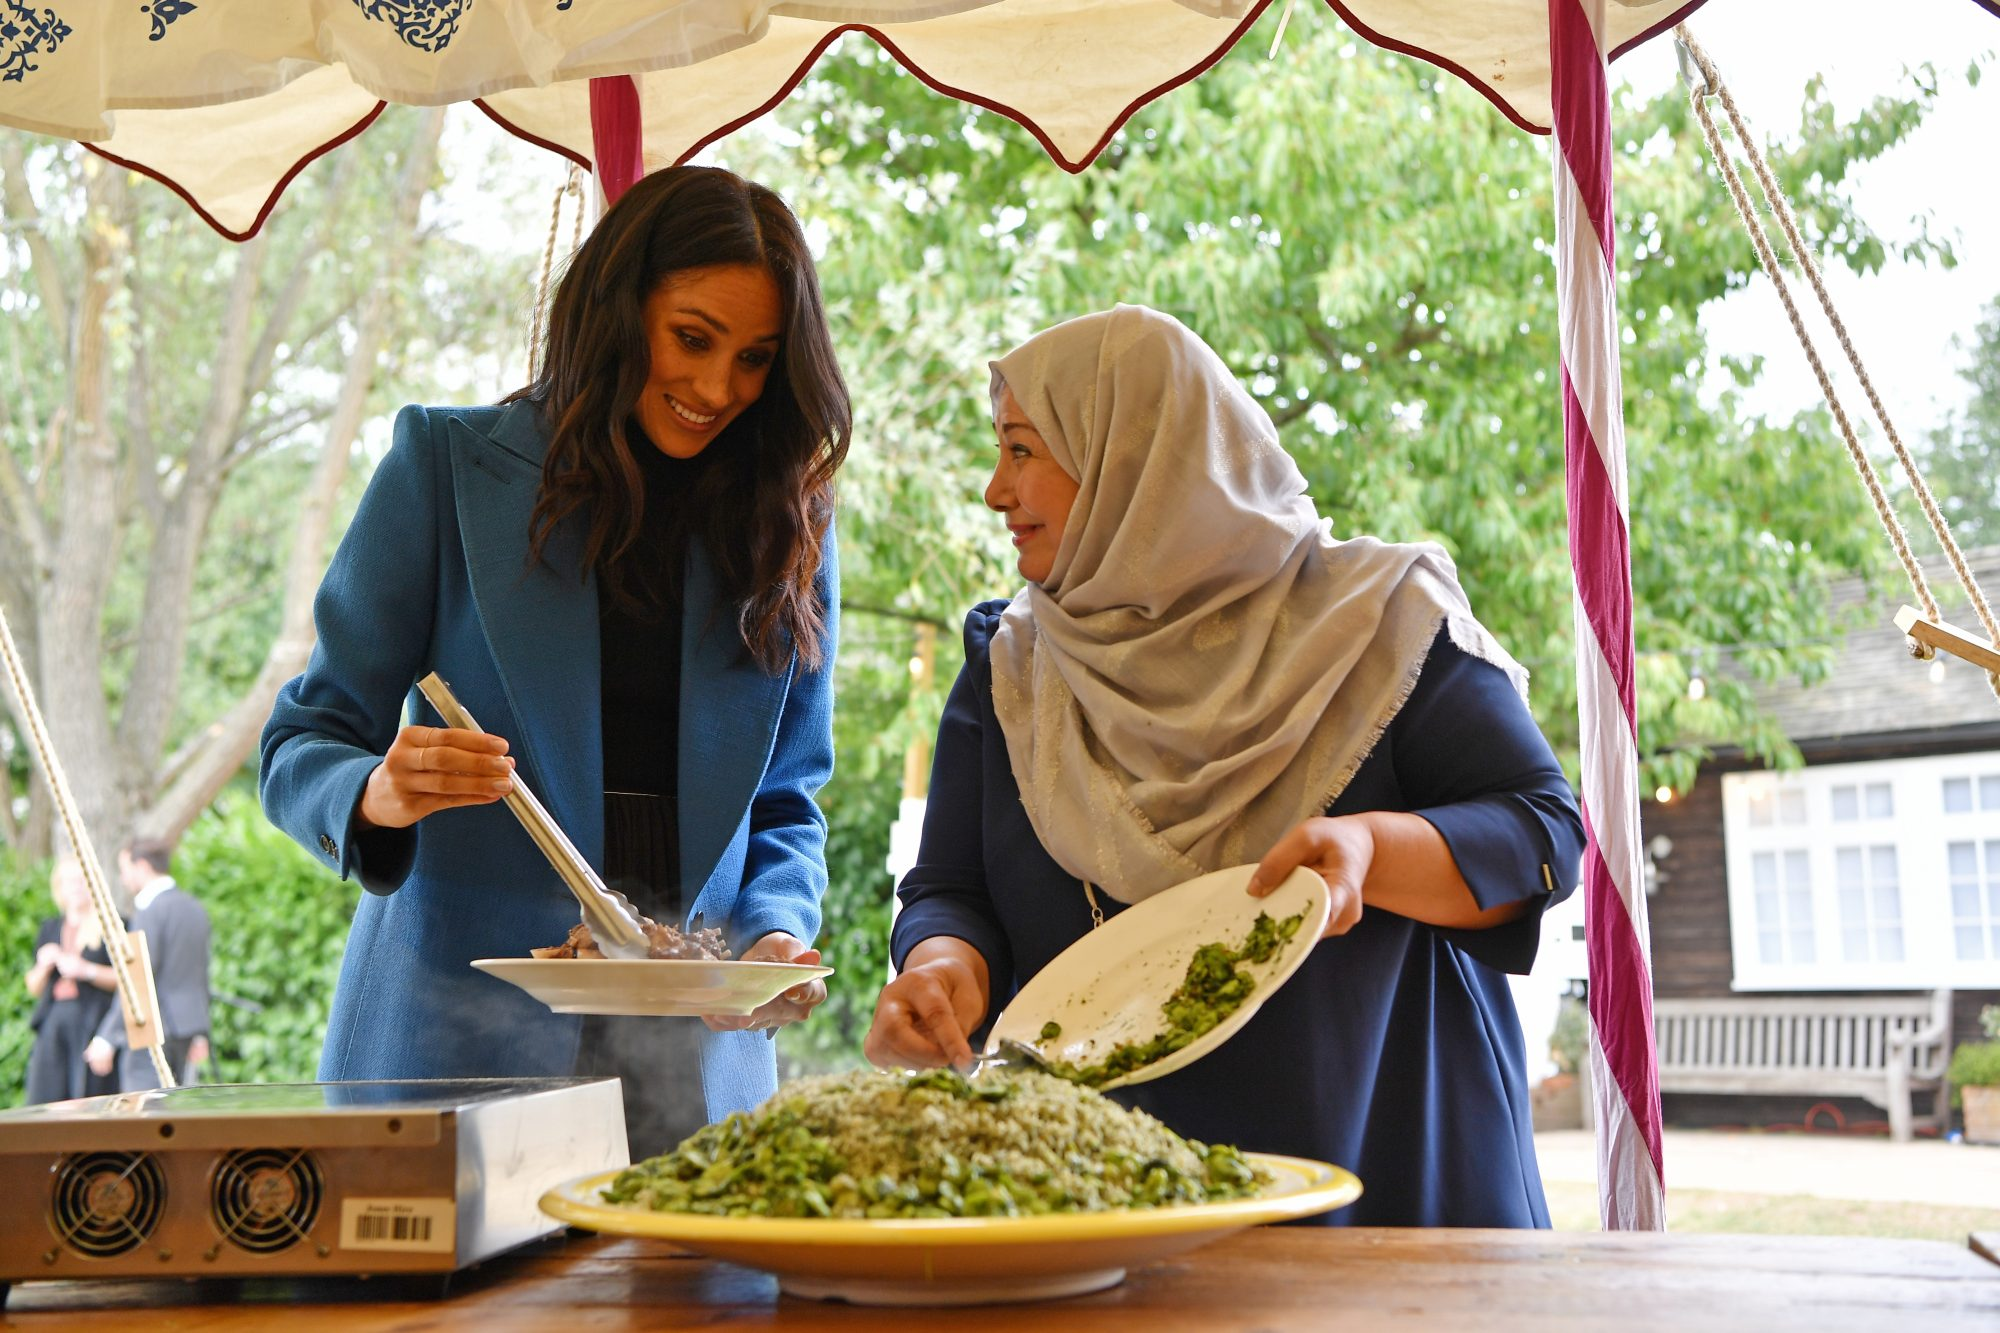 Meghan Markle Serving Food